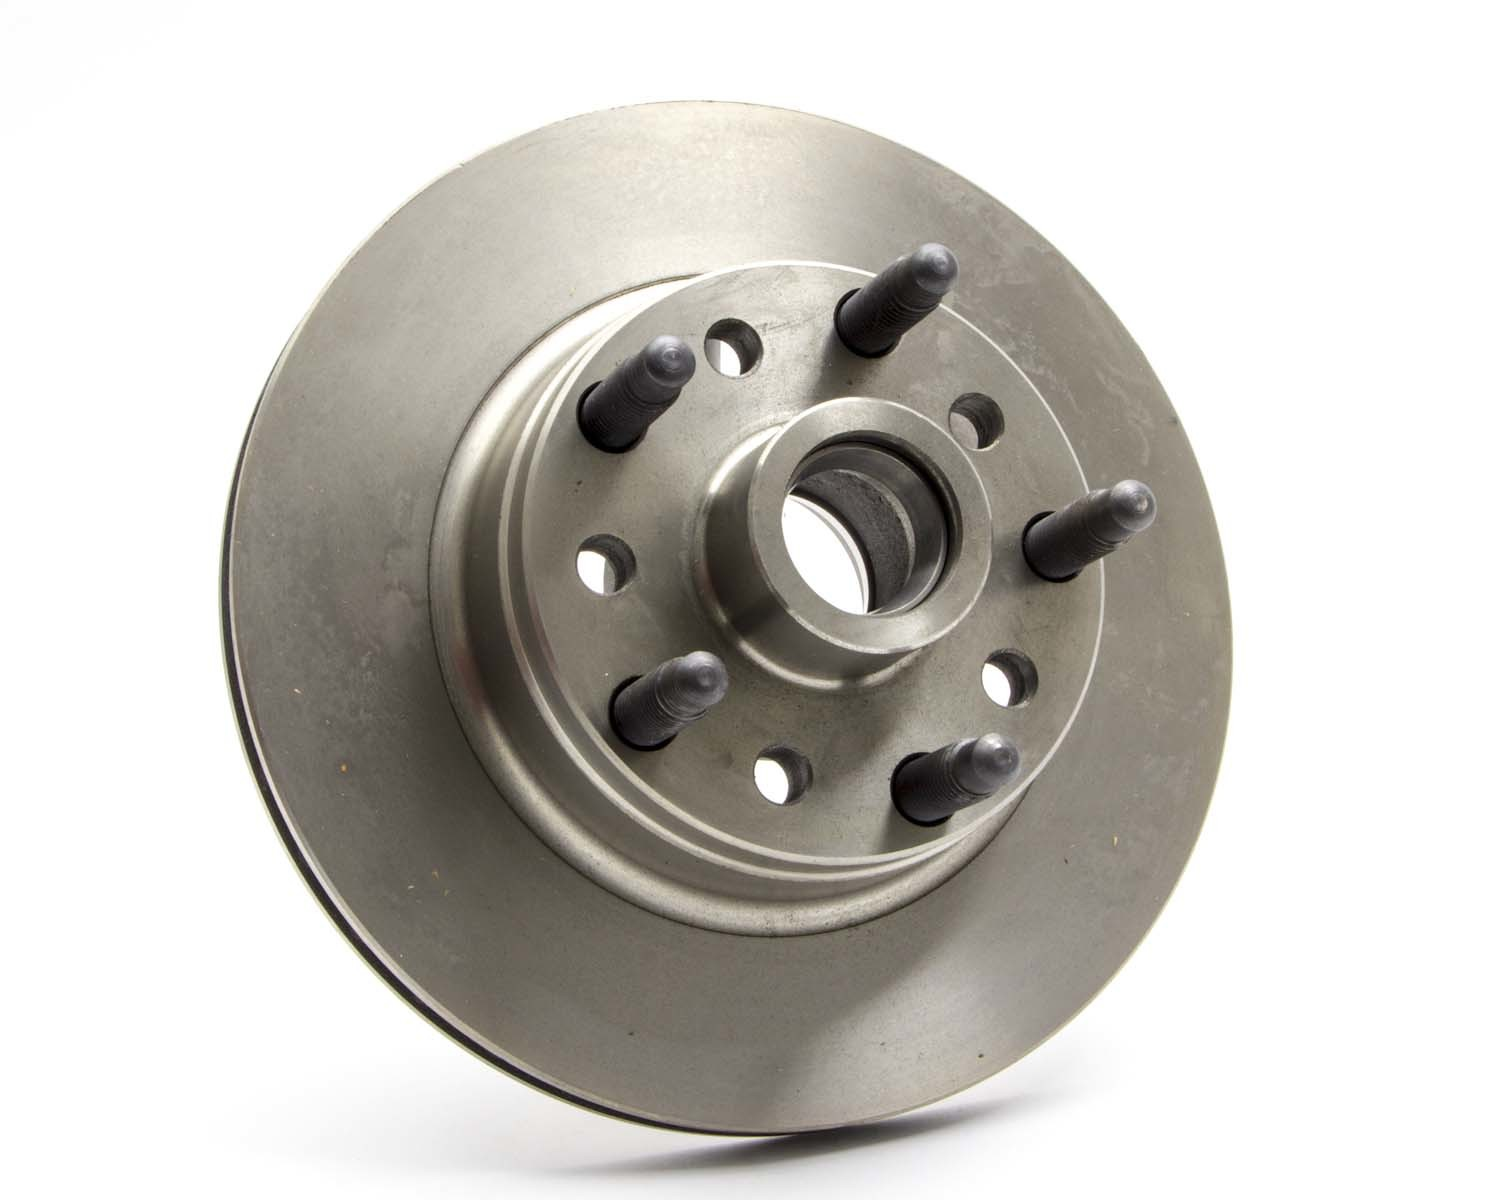 AFCO Racing Products 9850-6510 Brake Rotor, 11.000 in OD, 0.880 in Thick, 5 x 5.00 in Bolt Pattern, Iron, Natural, Ford Style, Each